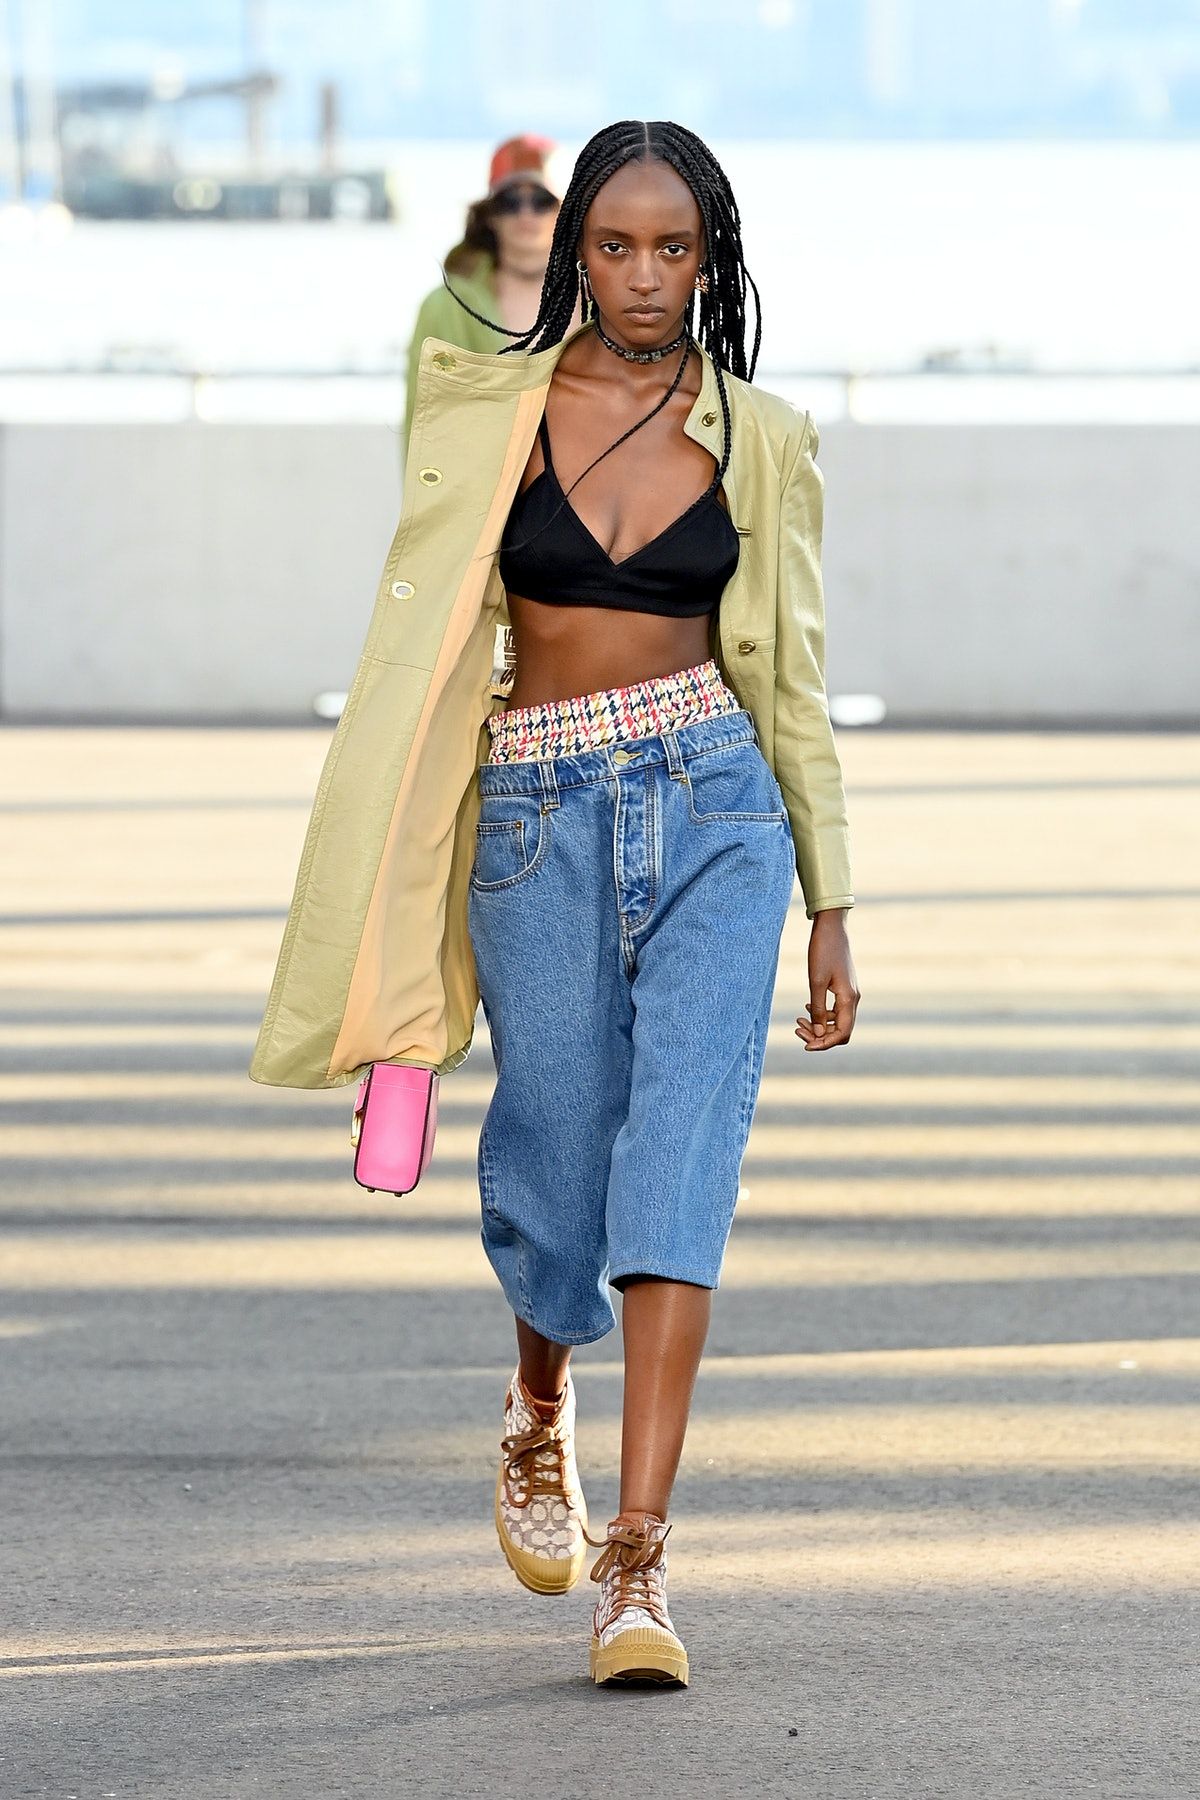 NEW YORK, NEW YORK - SEPTEMBER 10: A model walks the runway for Coach during NYFW: The Shows on Sept...